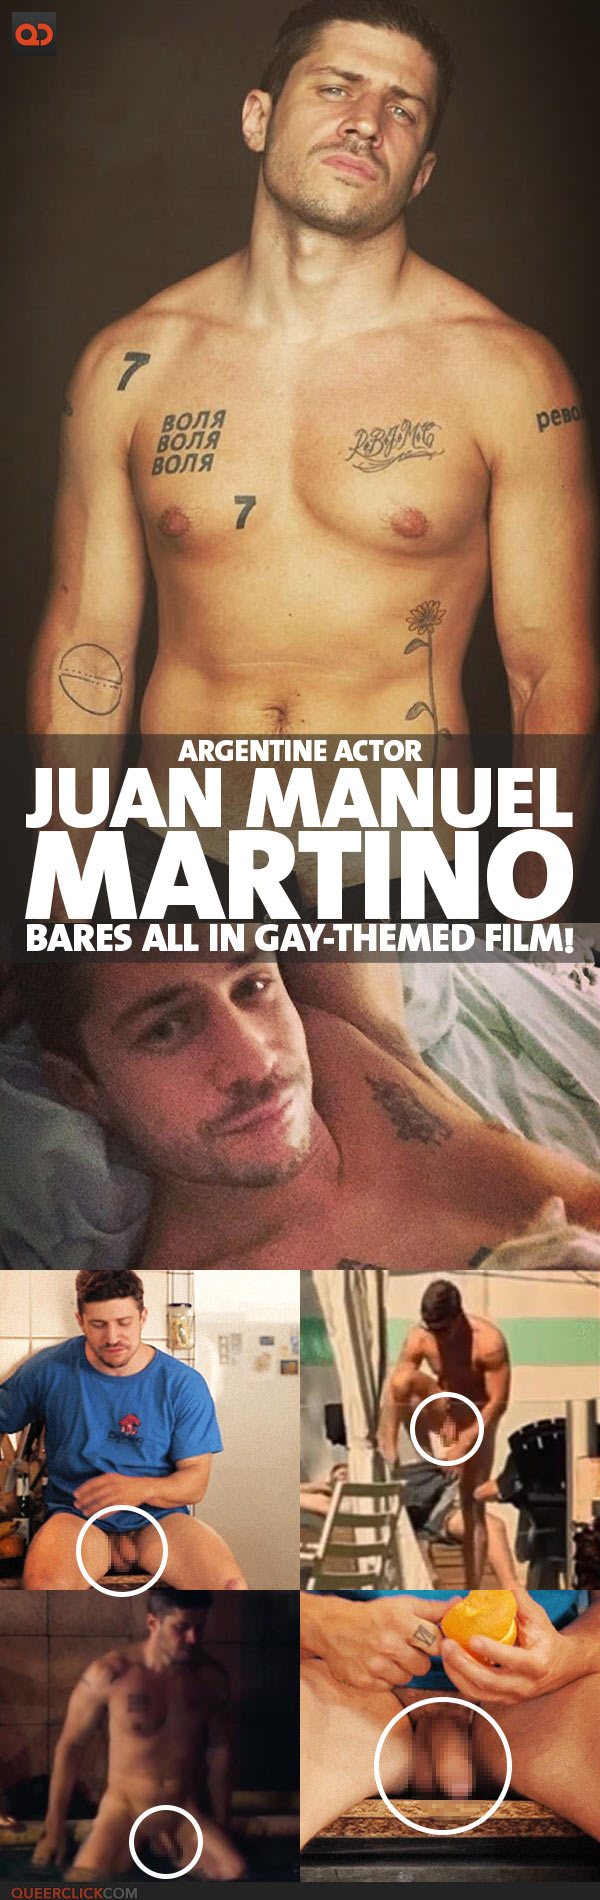 Juan Manuel Martino, Argentine Actor, Bares All In Gay-themed Film!